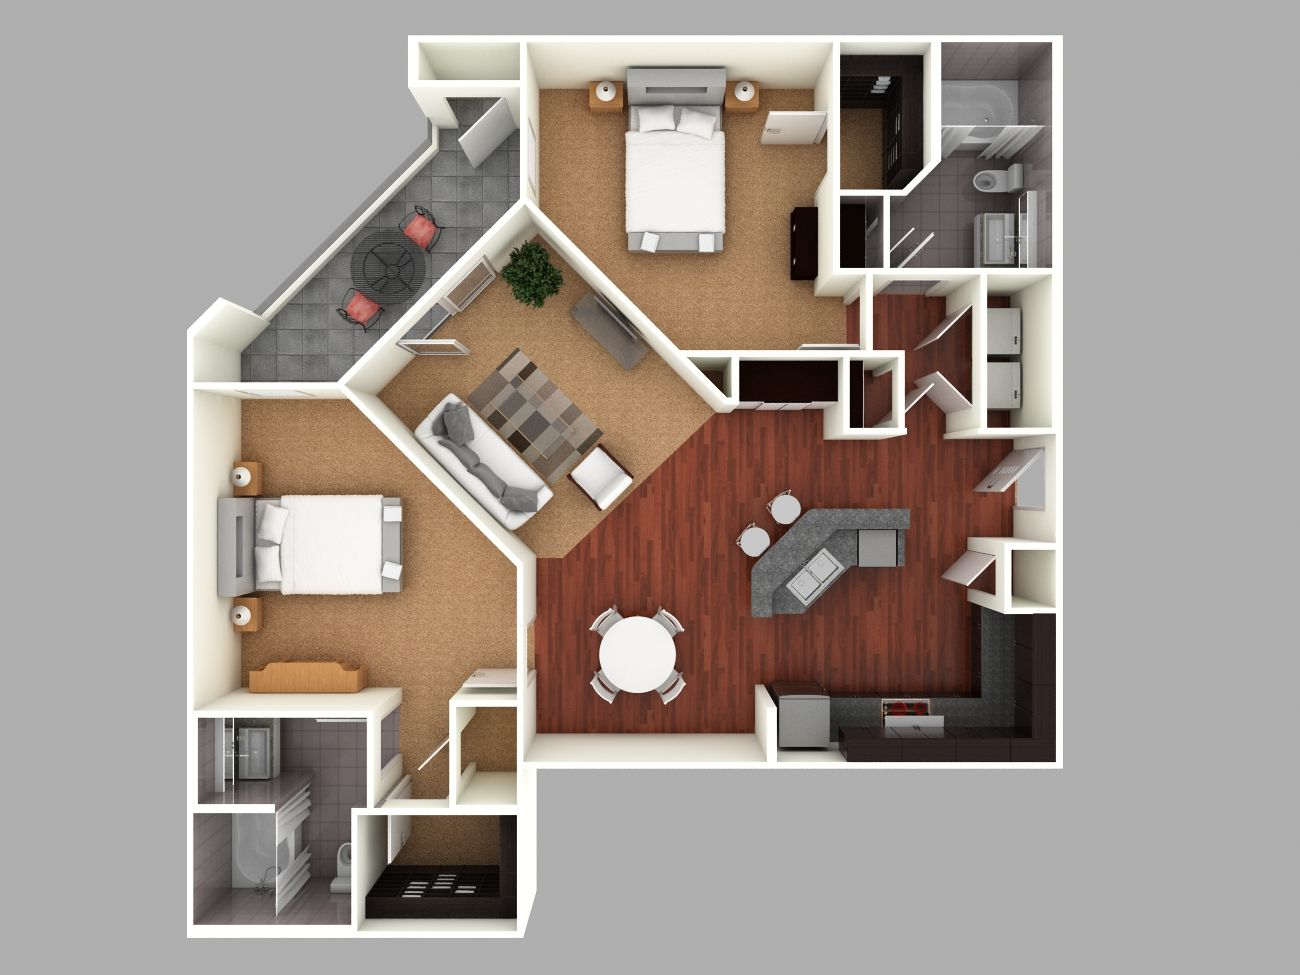 3d colored floor plan architecture colored floor plan for Sims 2 house designs floor plans